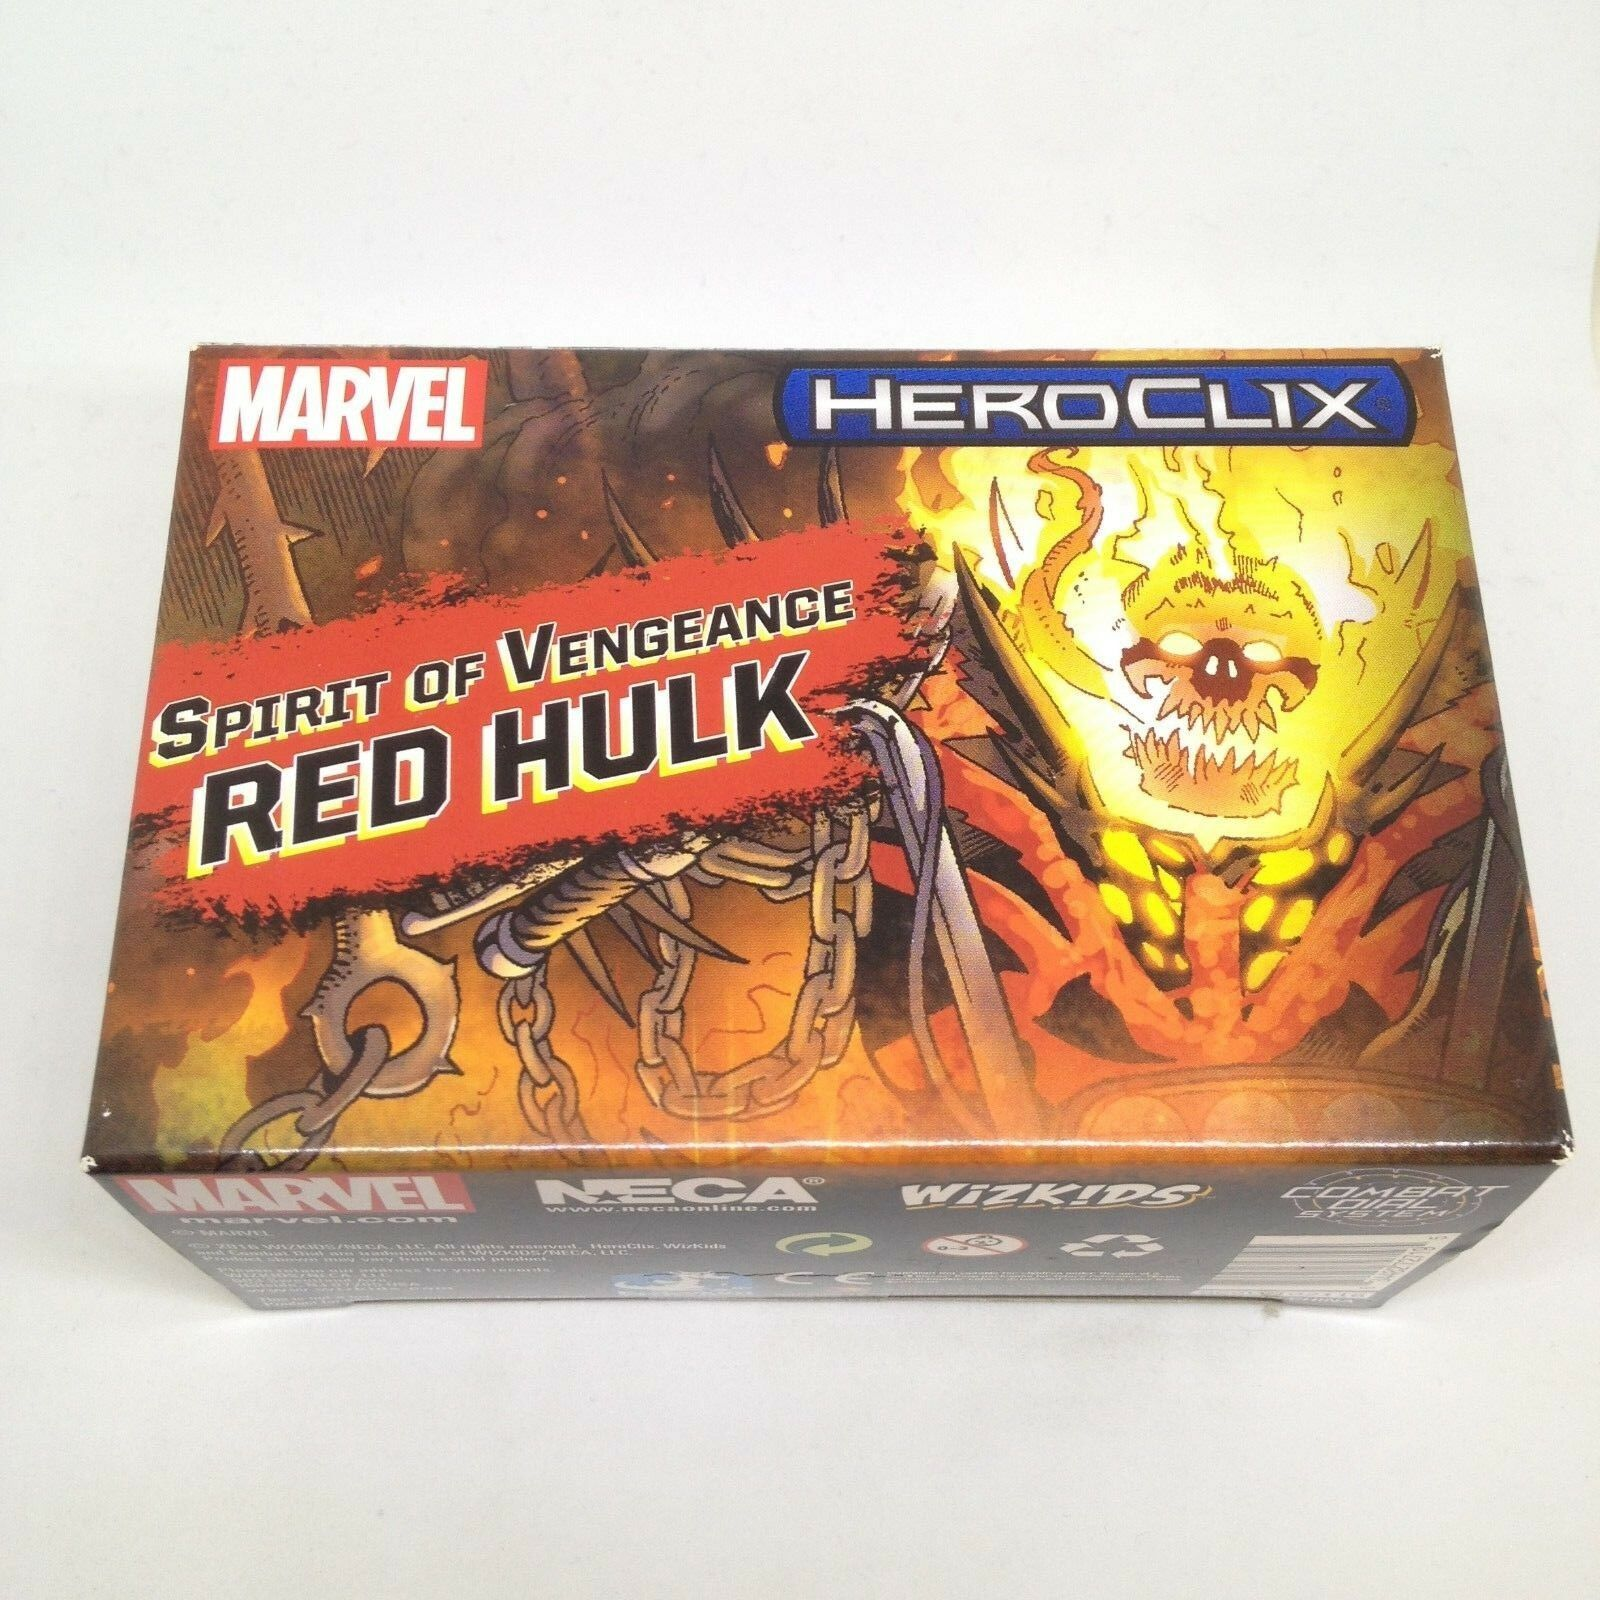 Heroclix 2017 Convention Exclusive Spirit of Vengeance Red-Hulk  MP17-002 w card